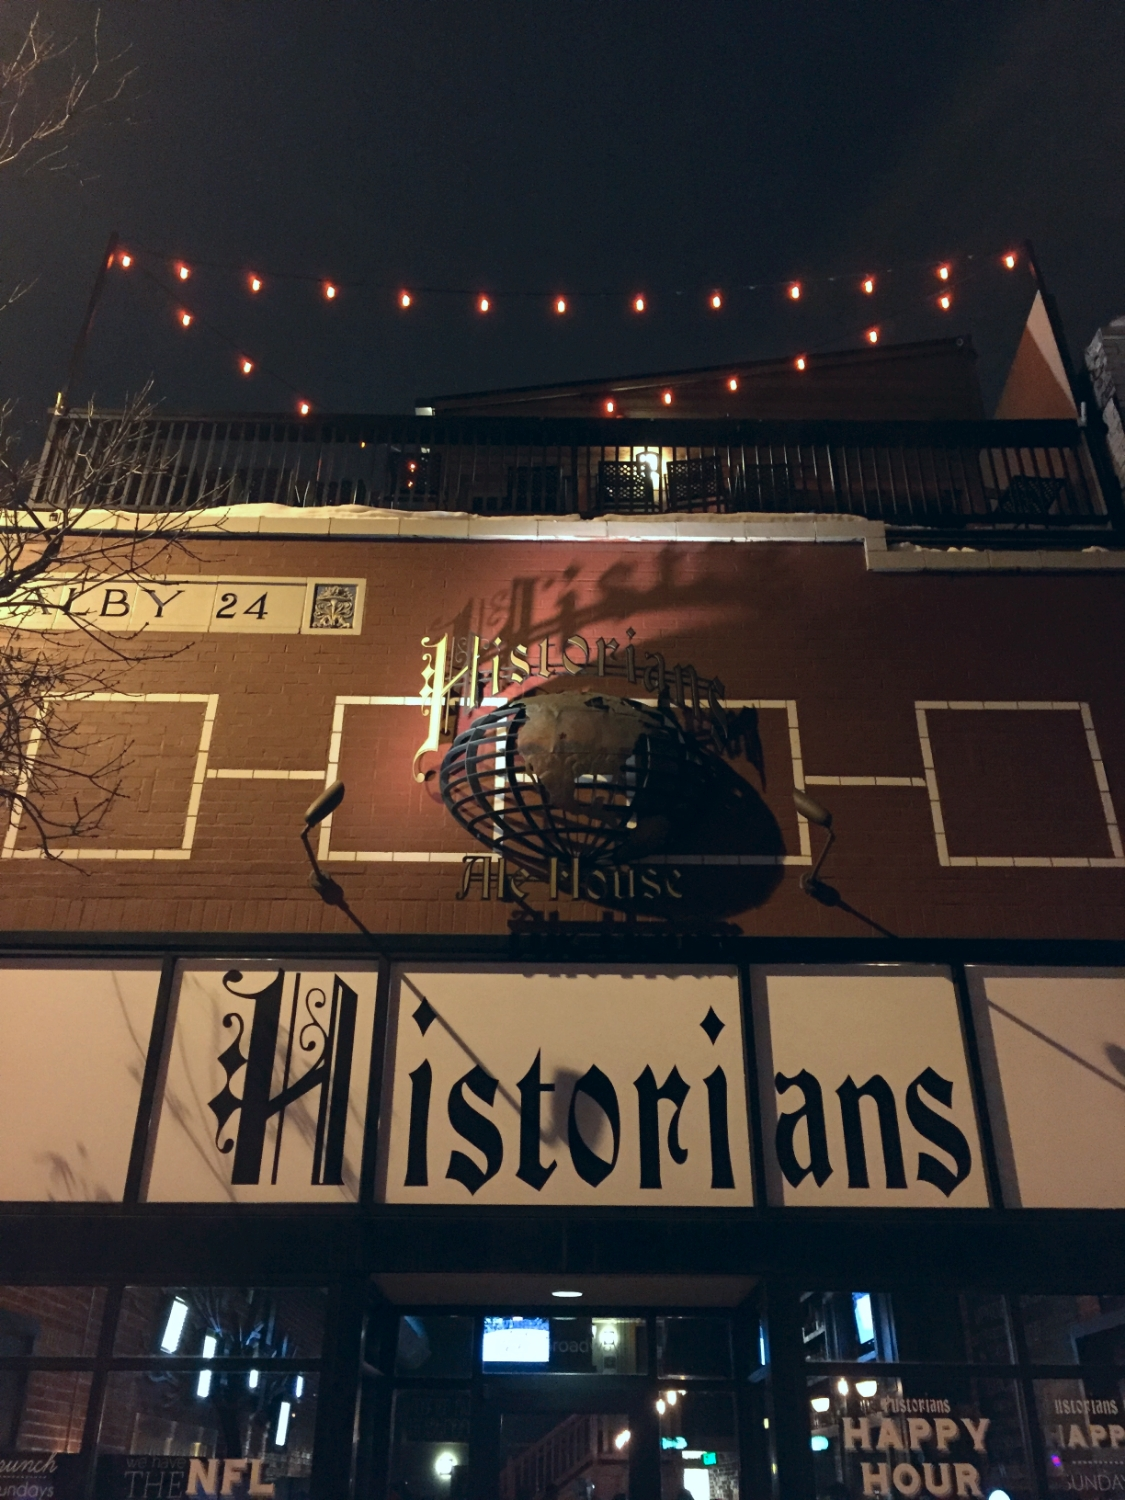 Historian Ale House, Denver, Colorado